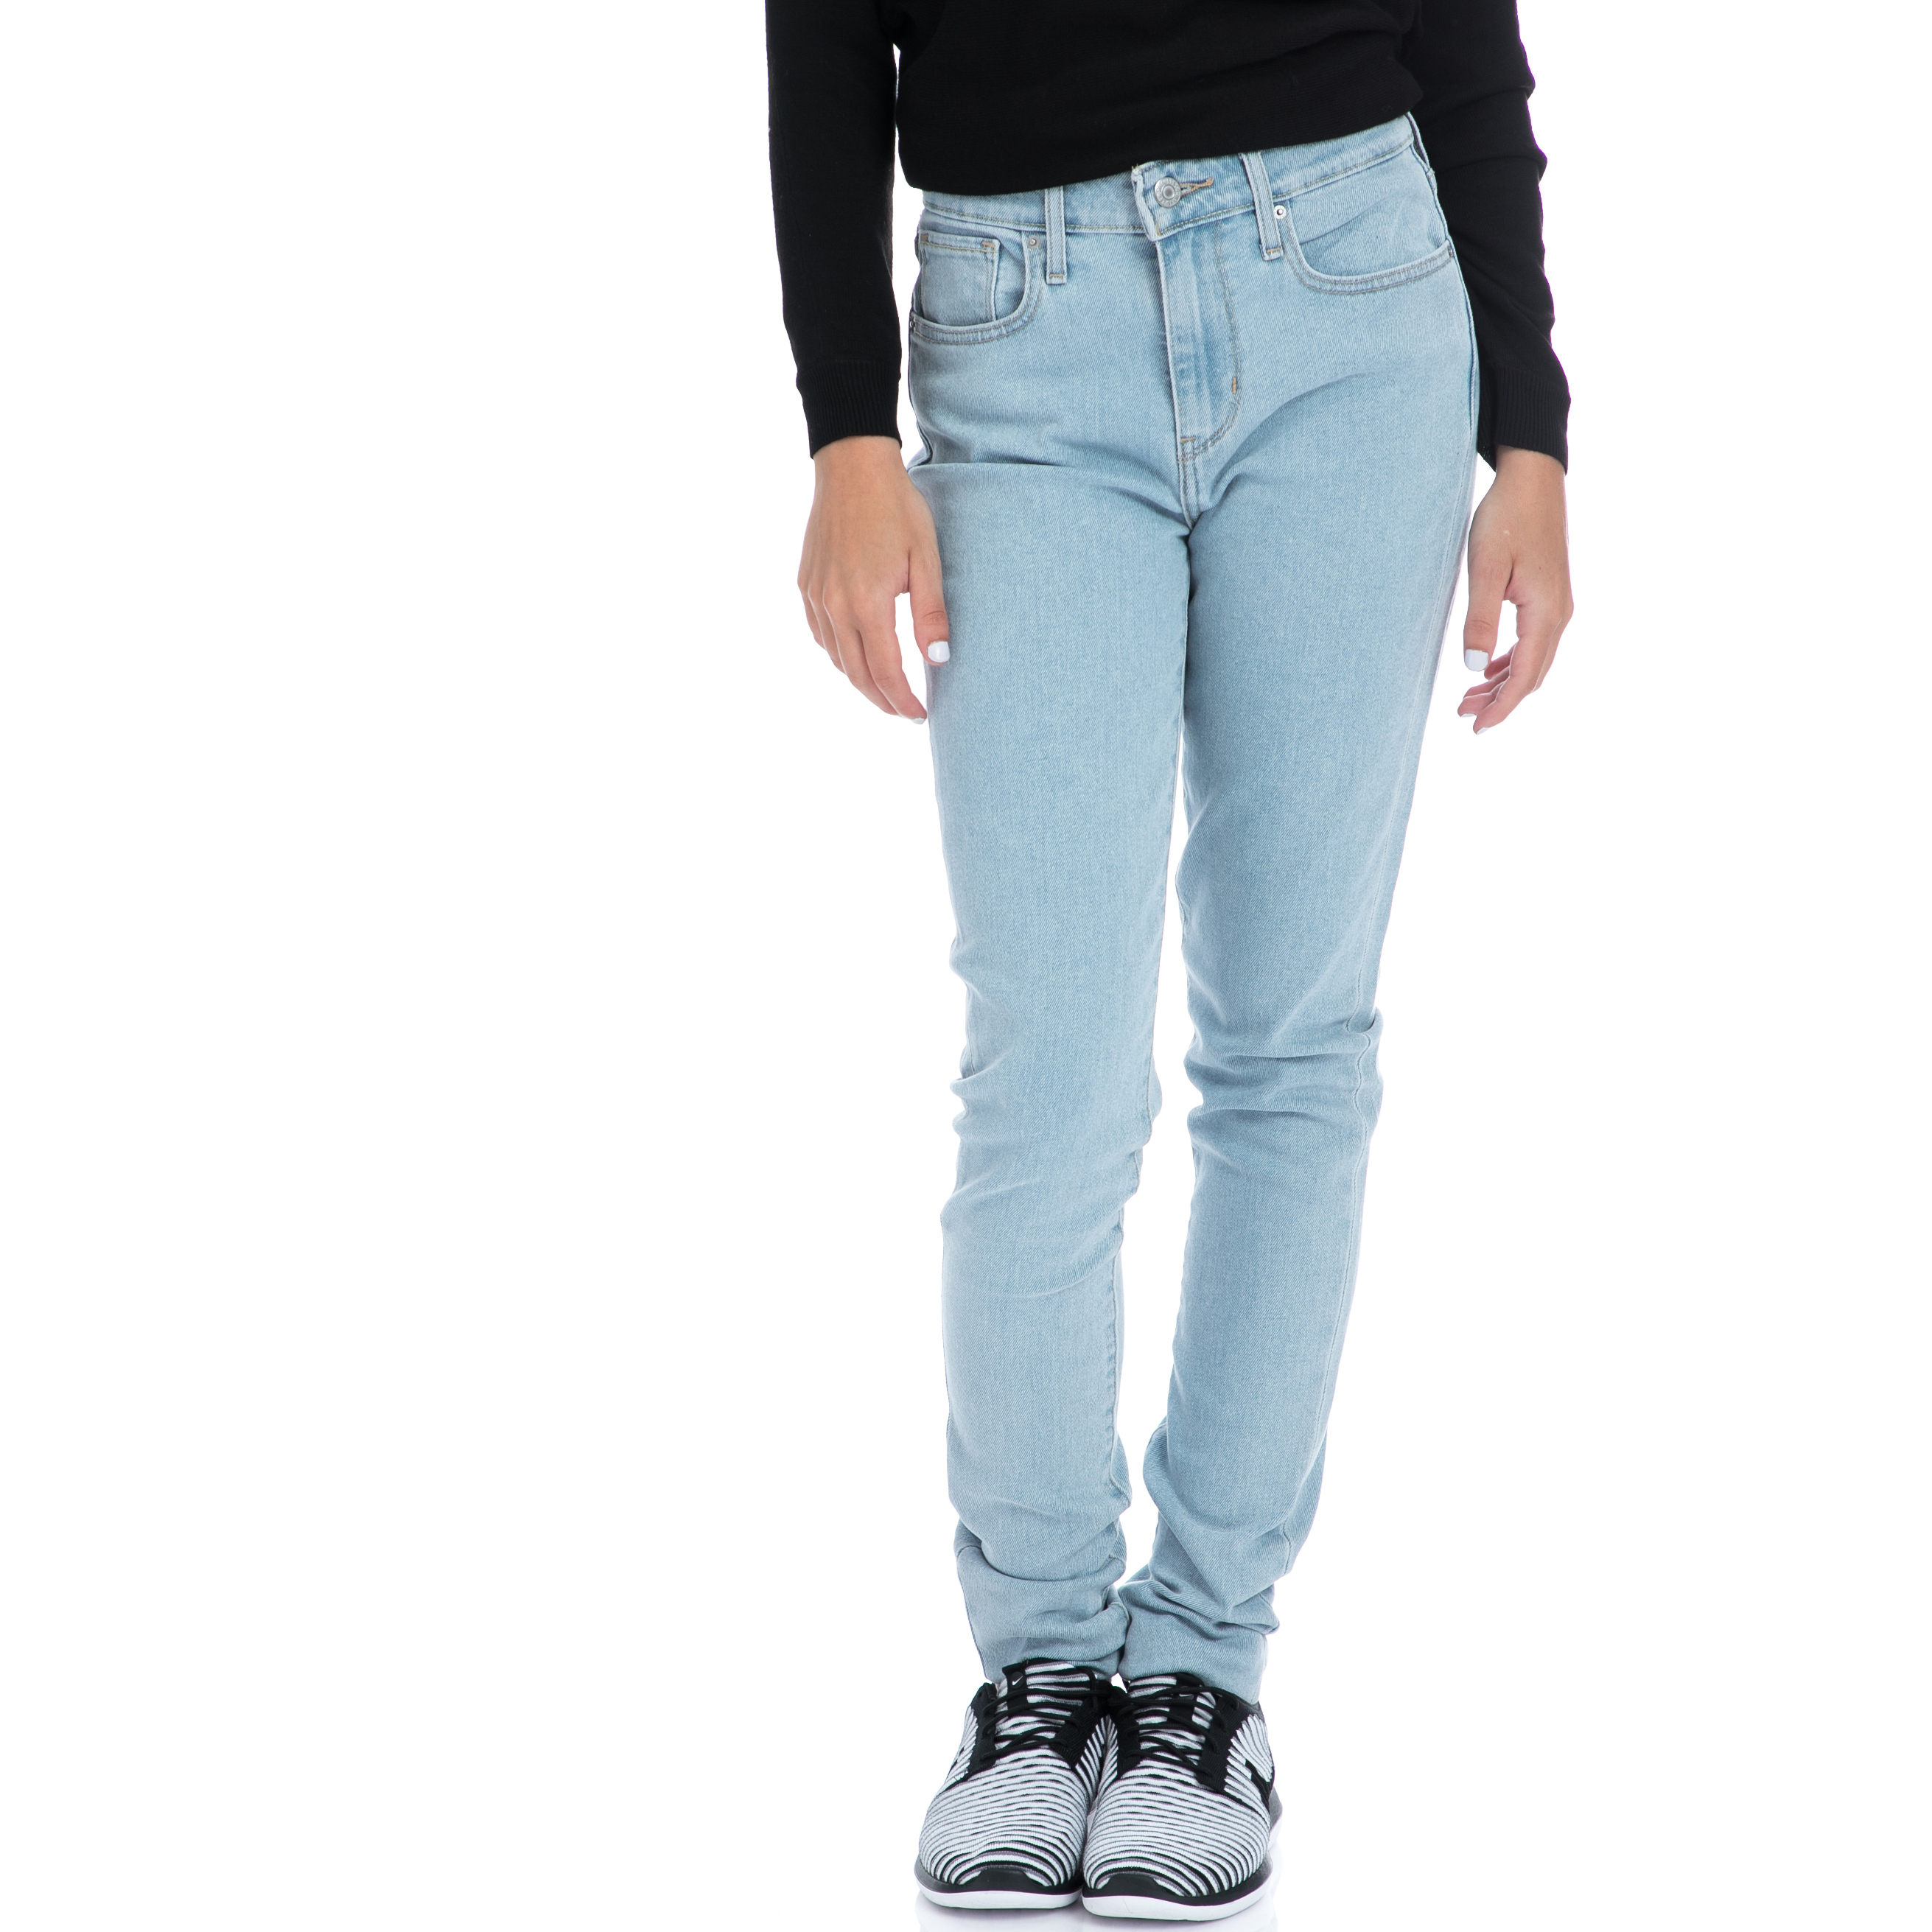 52533f9be575 LEVI S – Γυναικειο τζιν παντελόνι Levi s 721 HIGH RISE SKINNY μπλε. Factory  Outlet